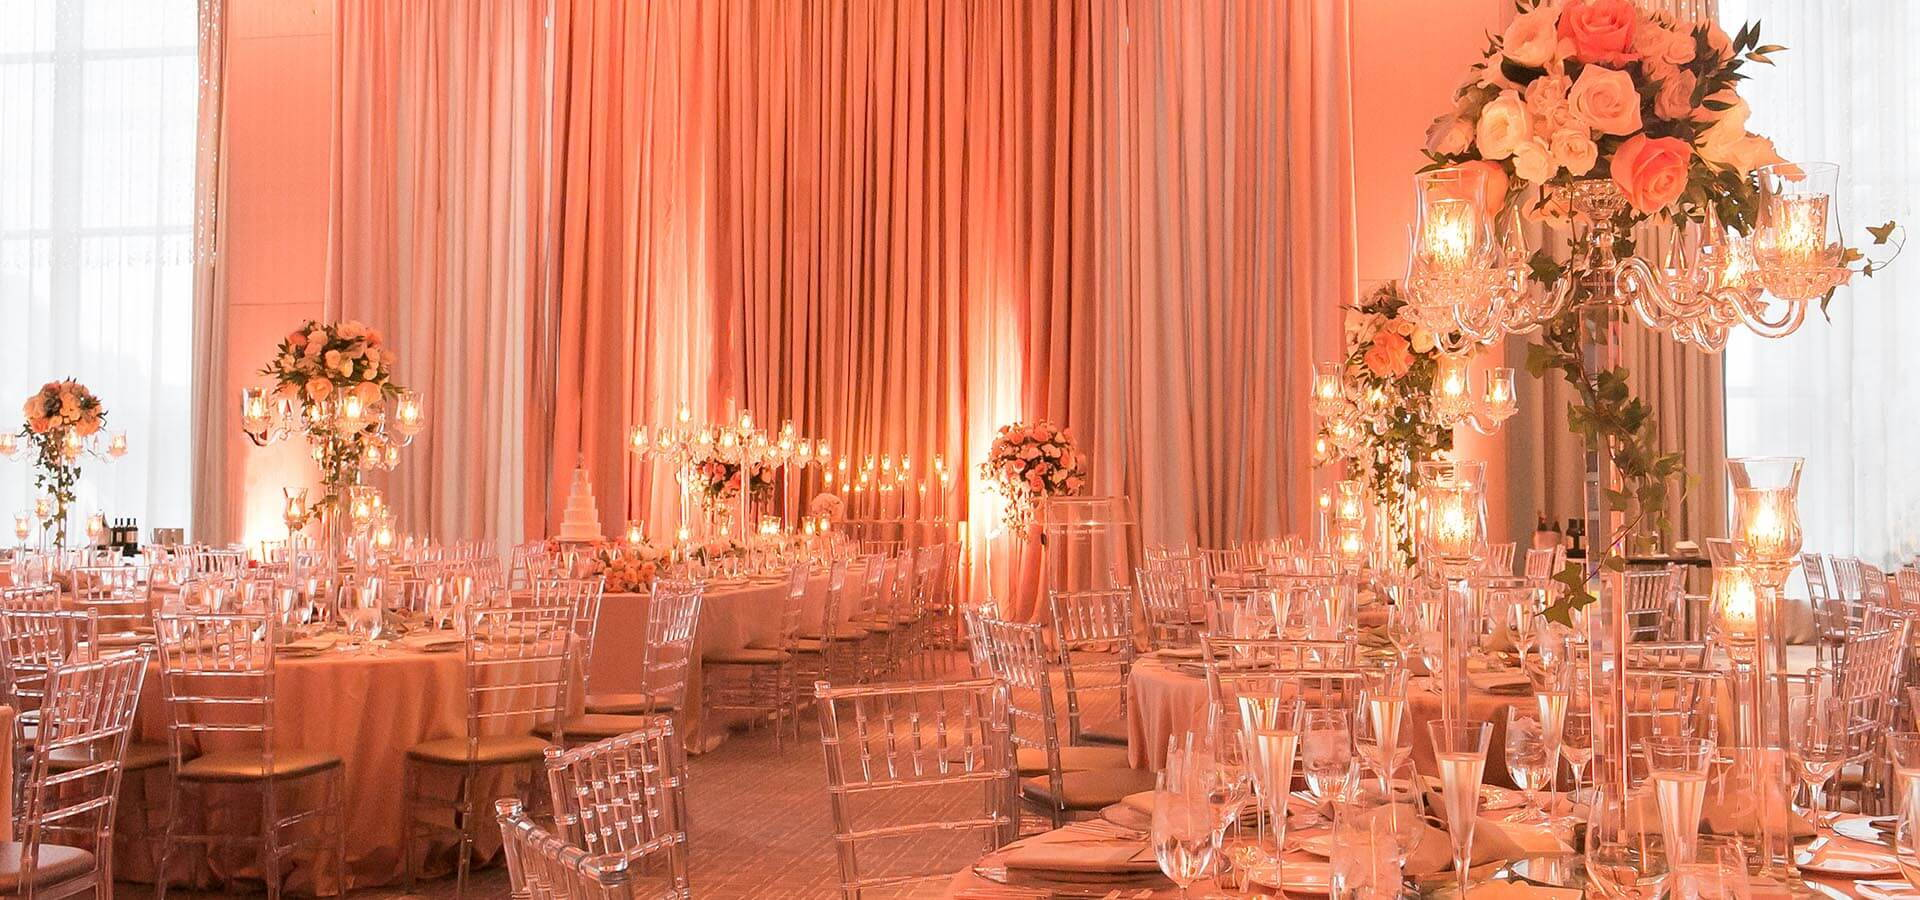 Hero image for Kristen and Jimmy's Blush Pink Wedding at the Four Seasons Hotel